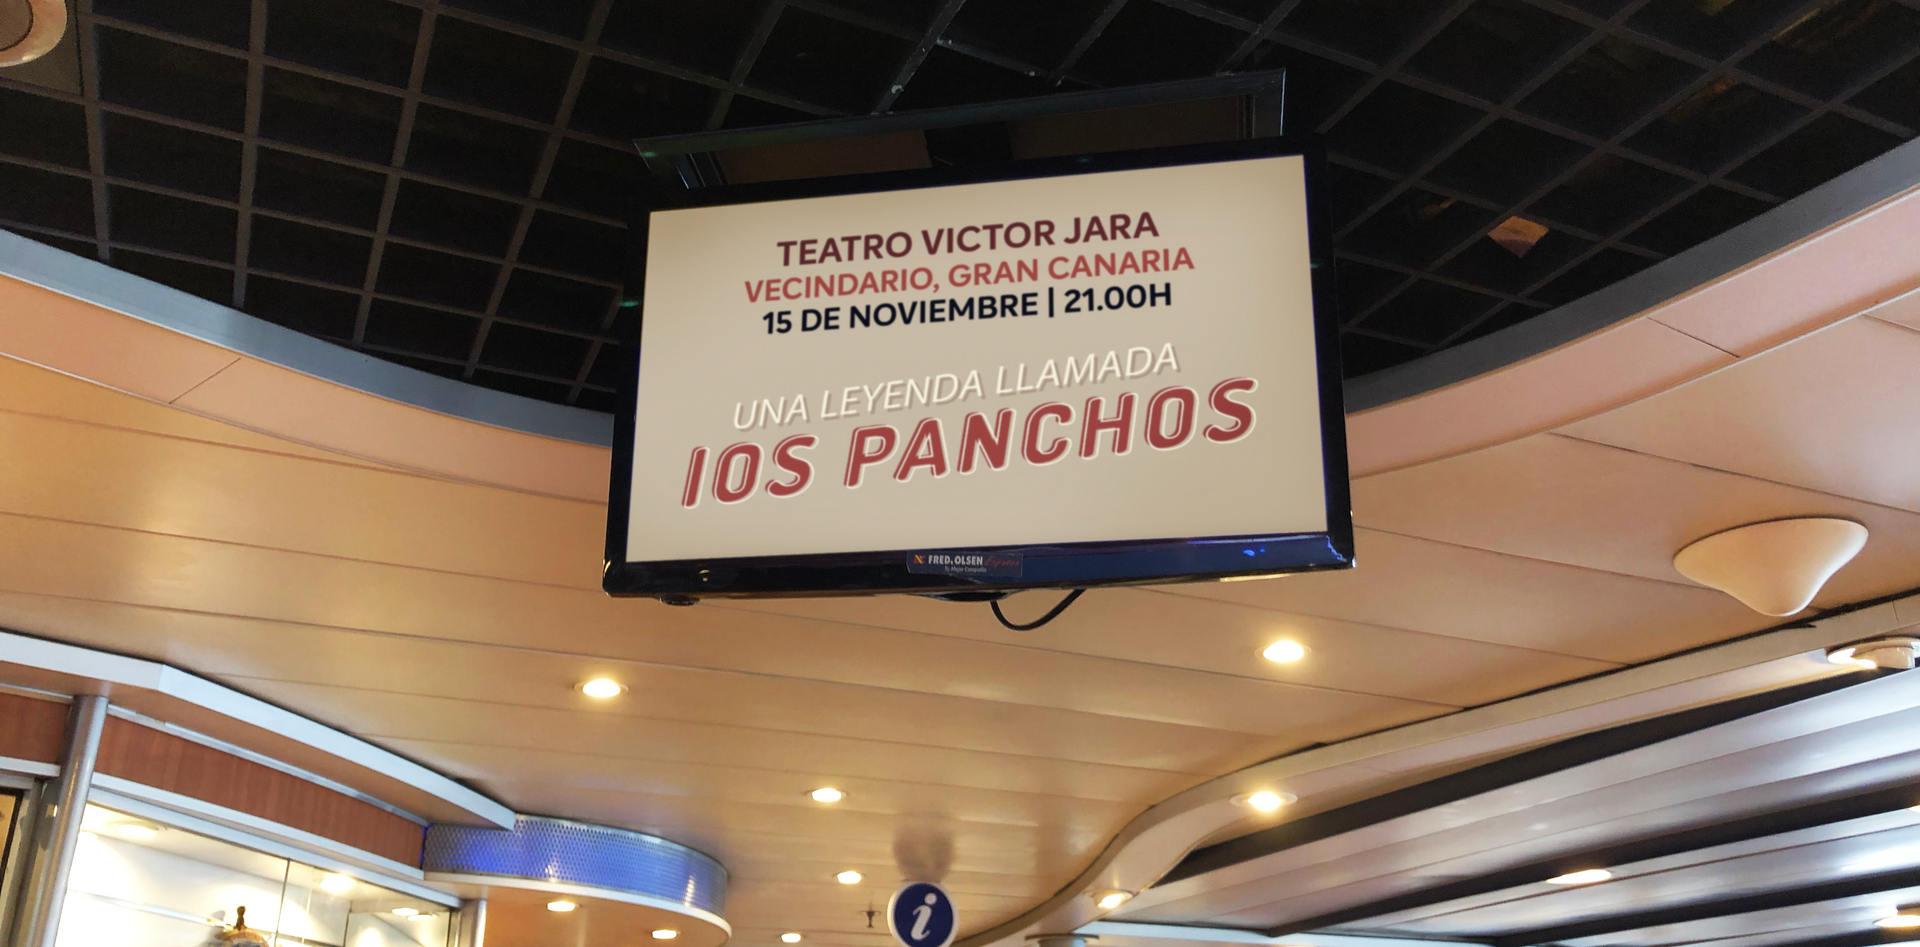 SPOT LOS PANCHOS CANAL MIRA TV FRED OLSE